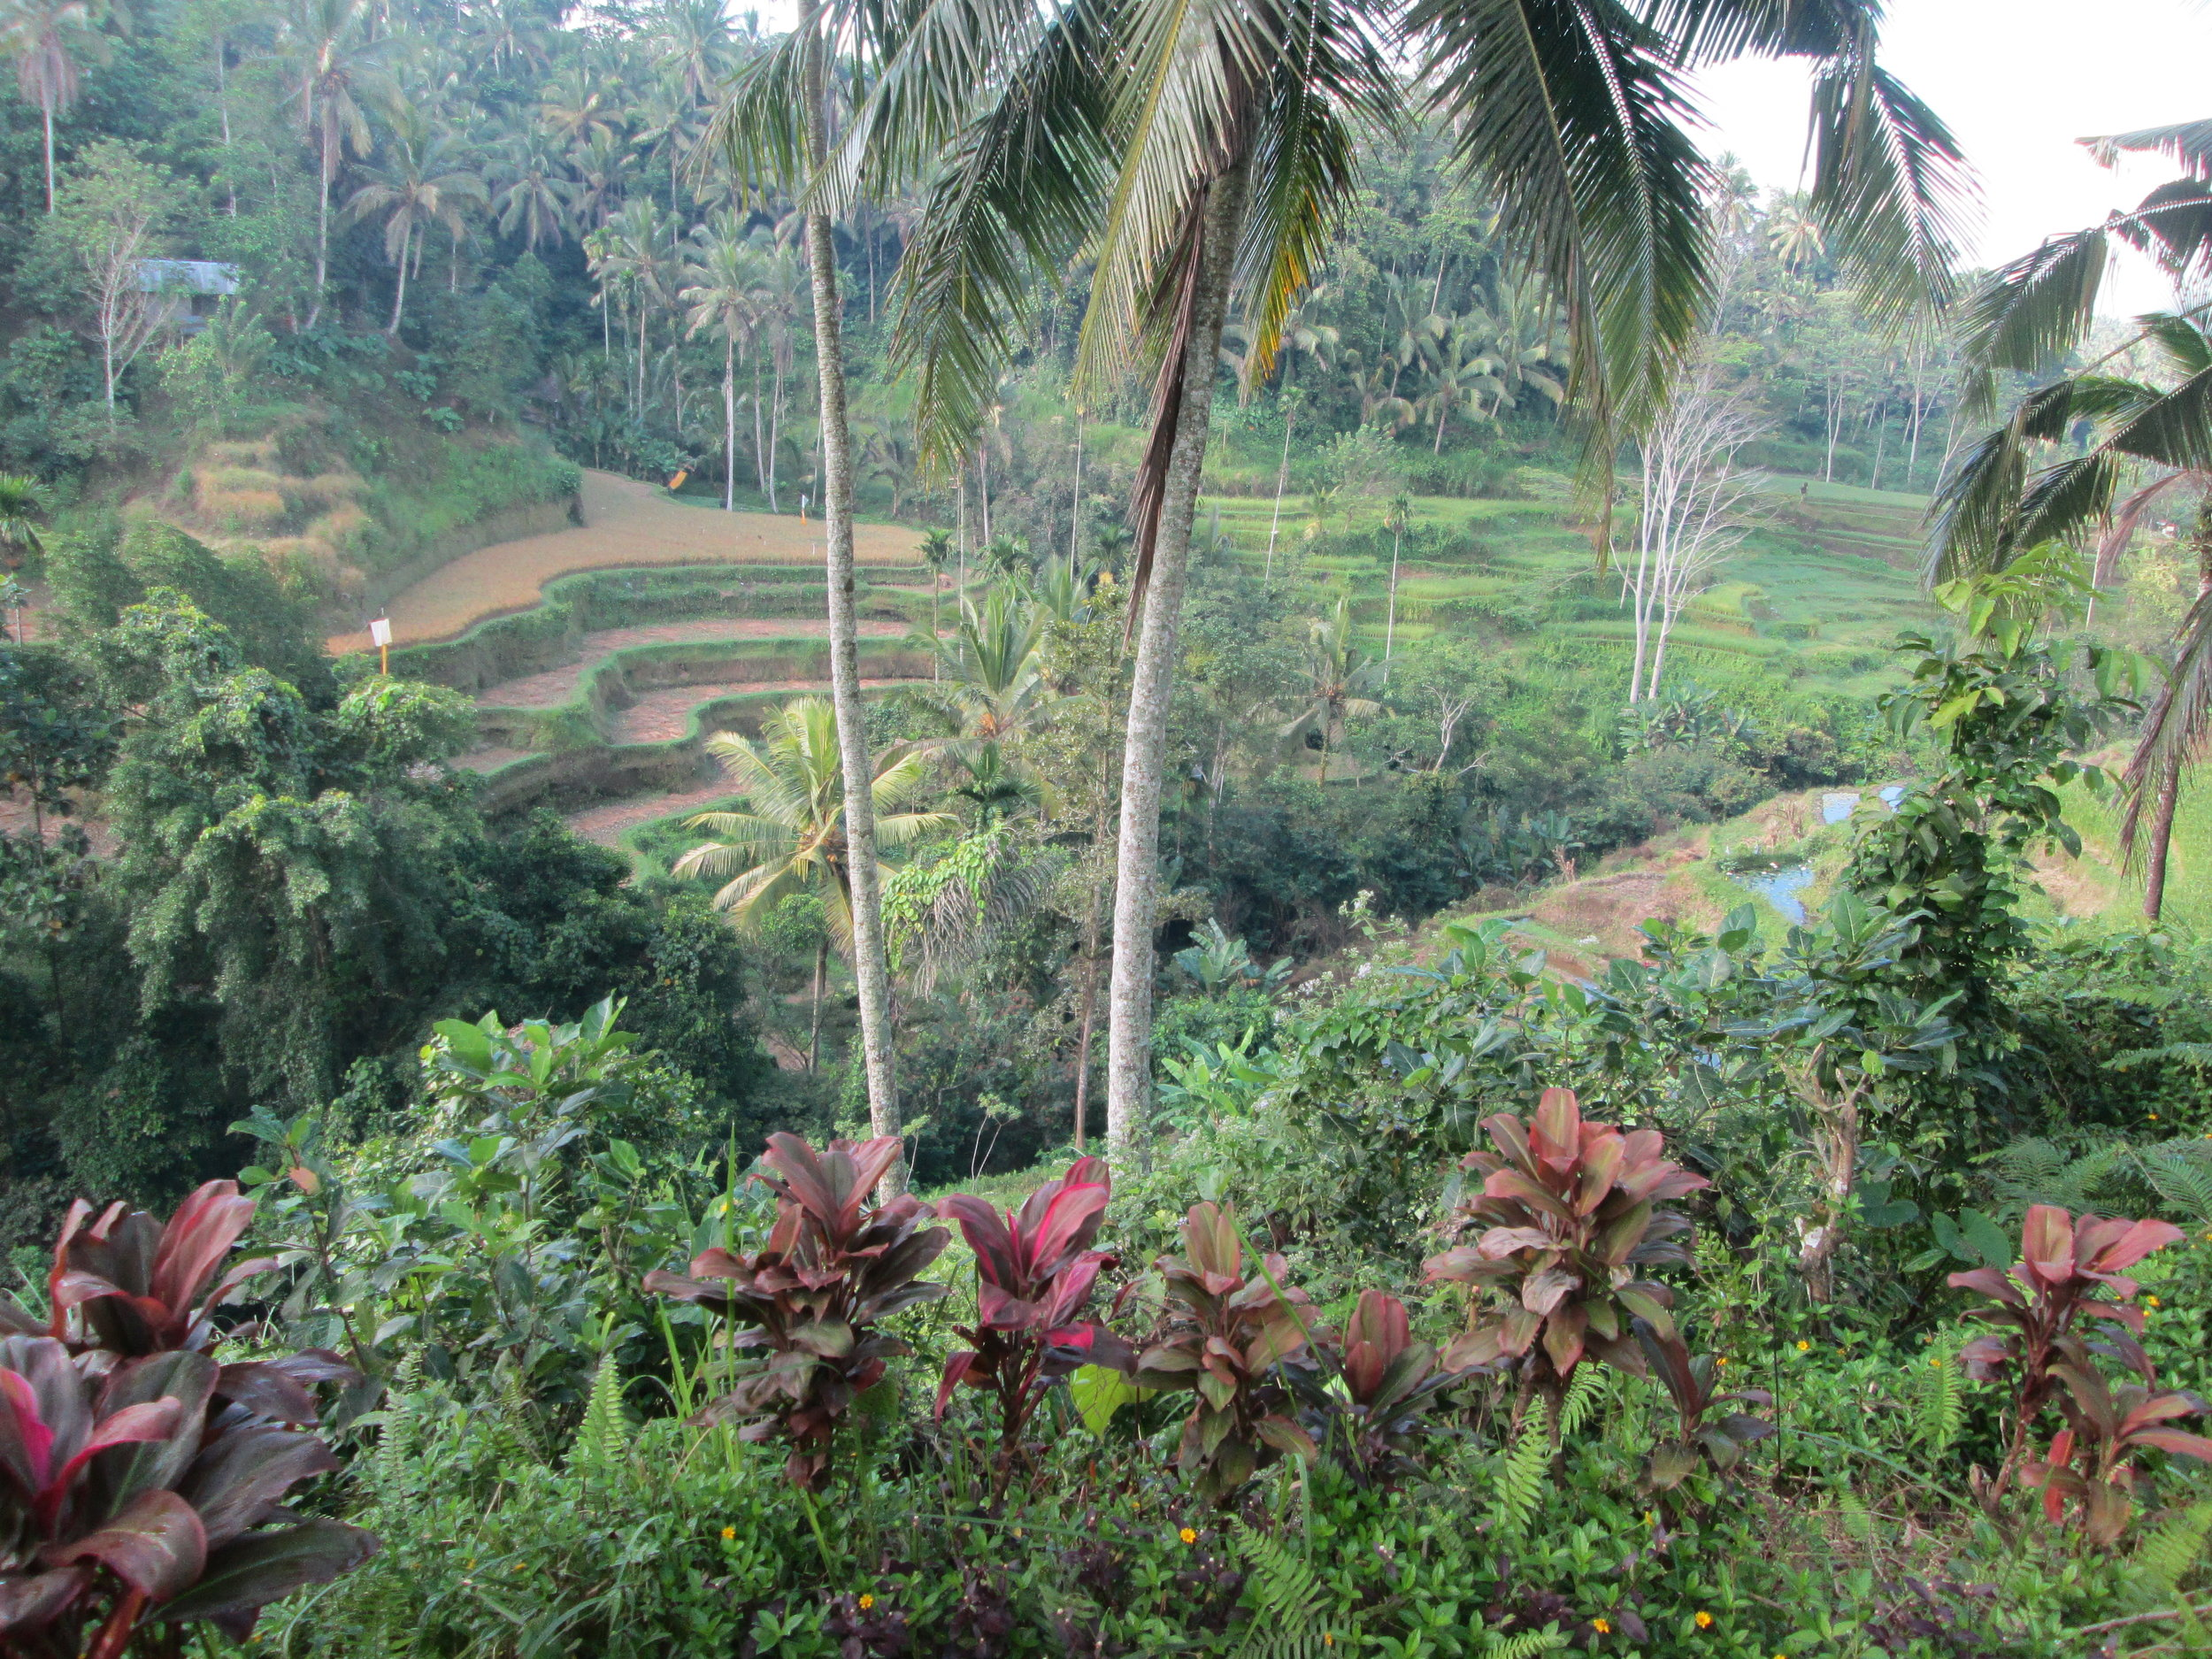 Tegalalang rice fields in Ubud.